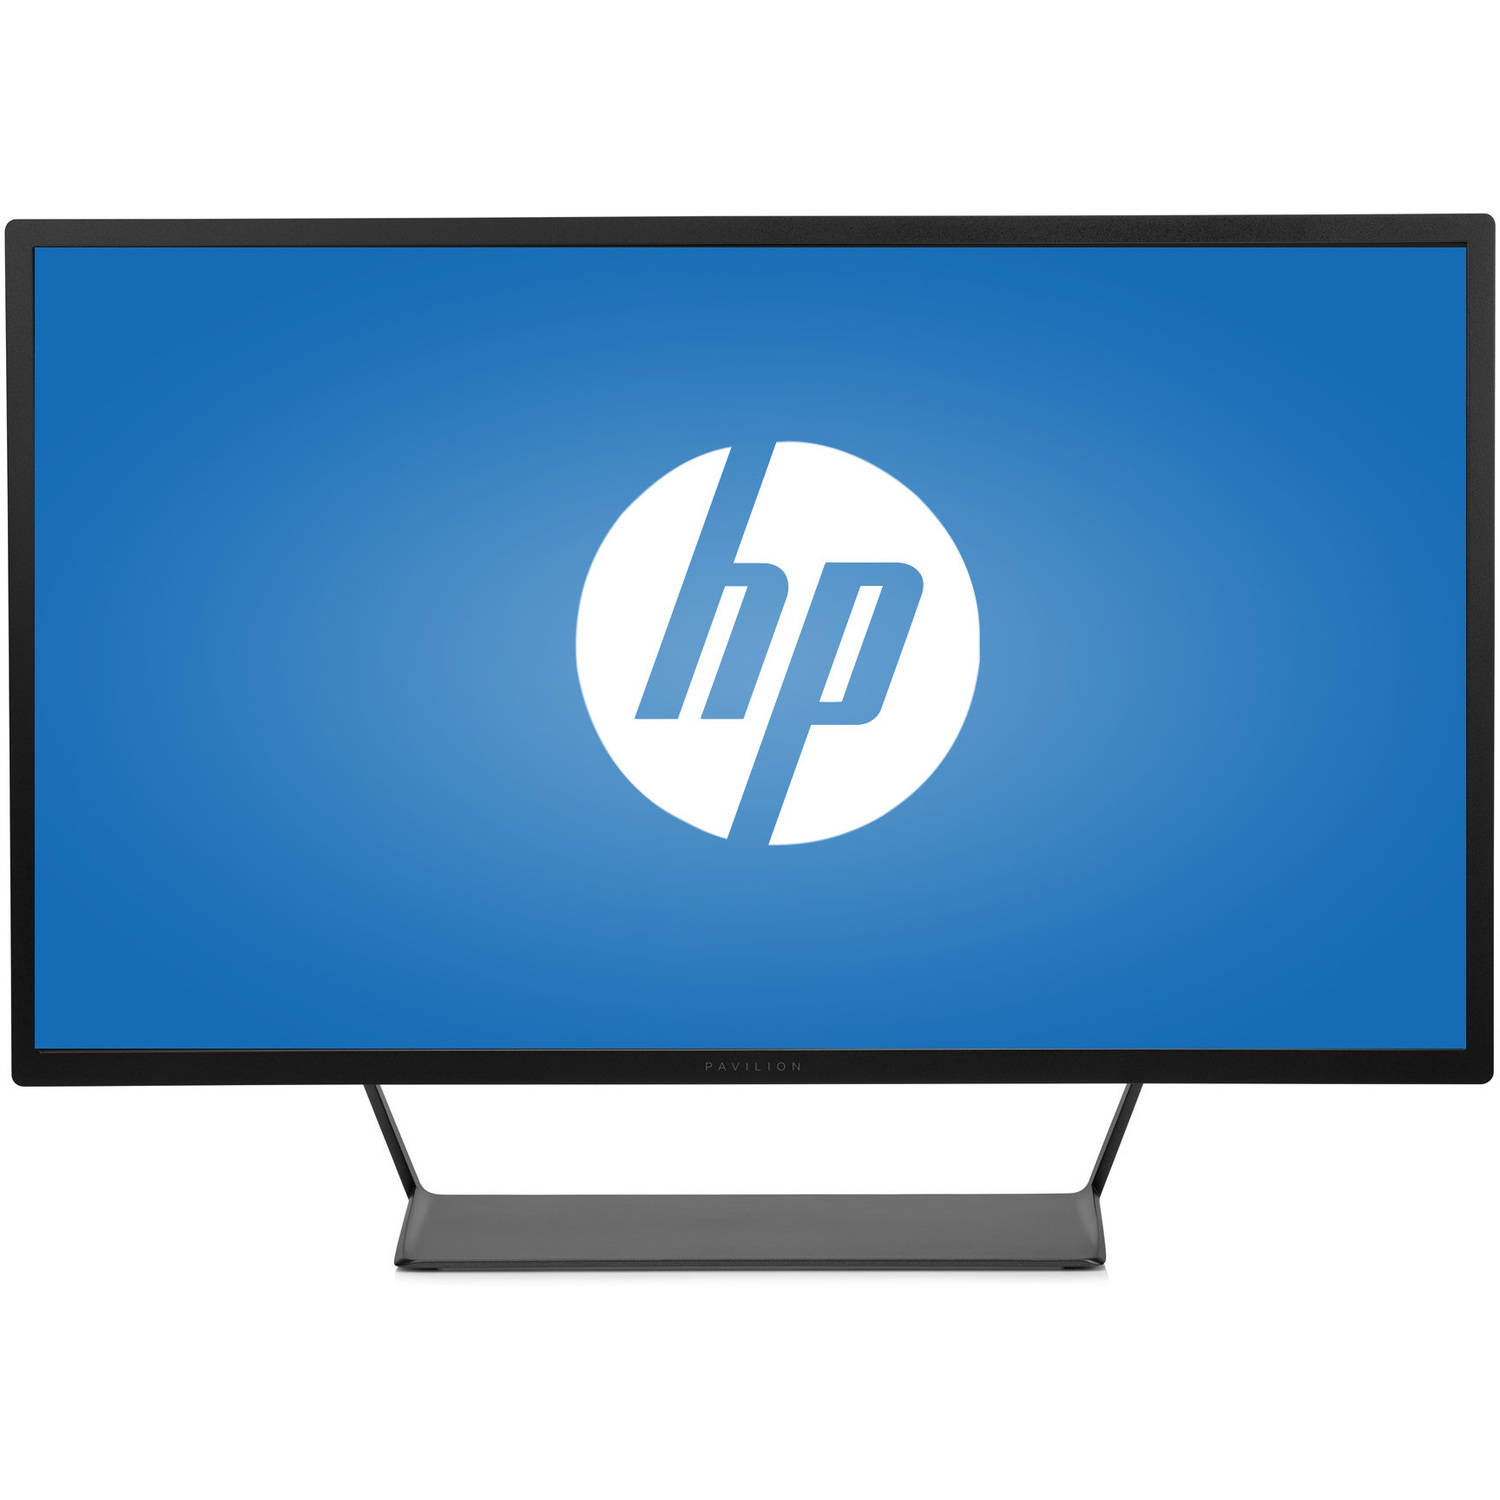 "HP Pavilion 32"" LED LCD Widescreen Monitor (V1M69A#ABA Black)"